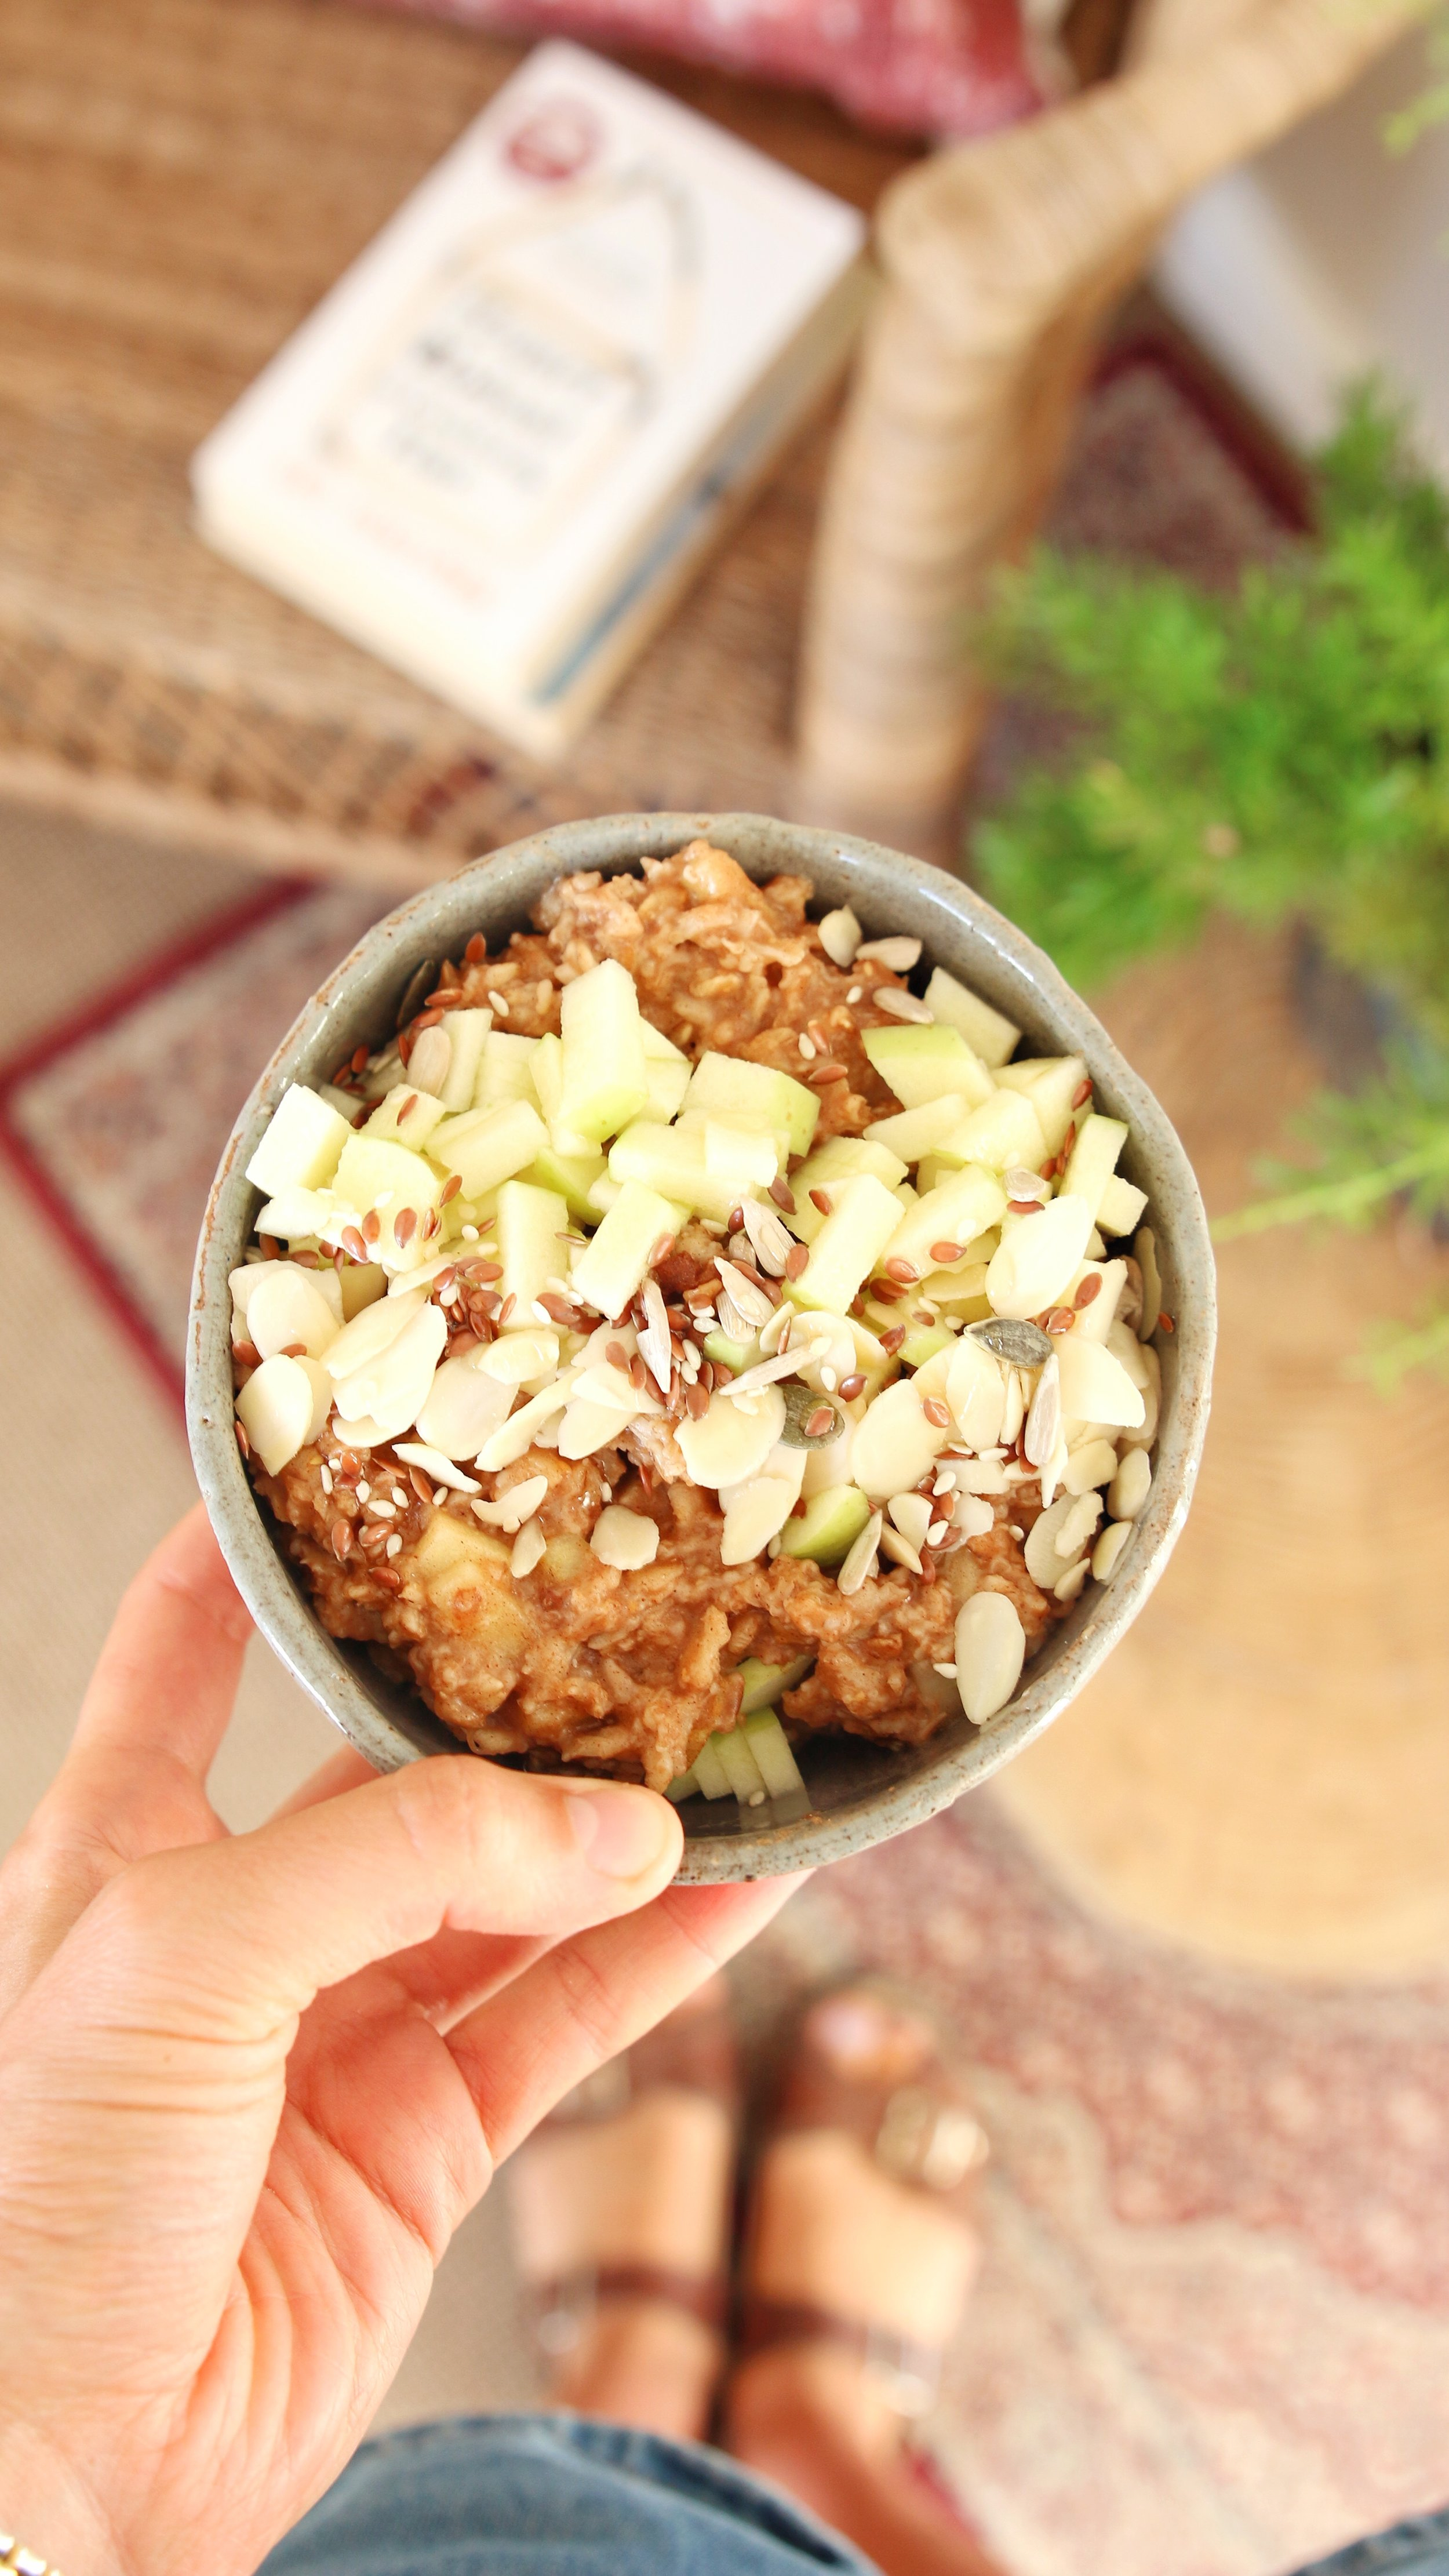 - For when a cool morning comes and you're in the mood for a warm brekkie:Cooked: 1/2 cup rolled oats, cinnamon and 1tsp honey.Topped with: apple, almond flakesand a mix of seeds.